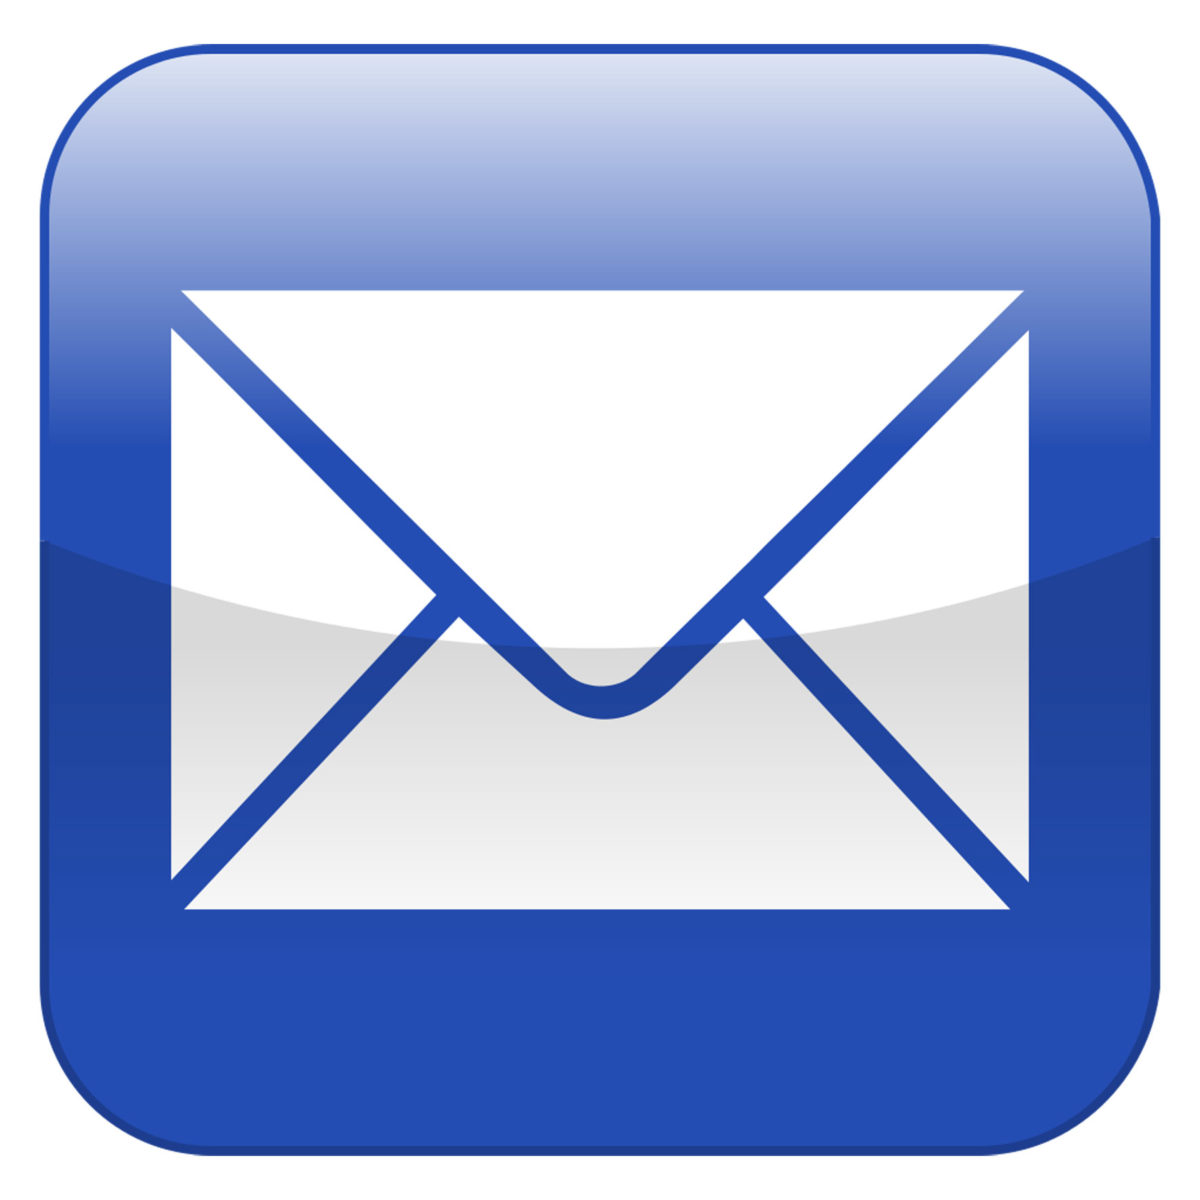 Outlook Contact Icon: Outlook Mail Icon Download